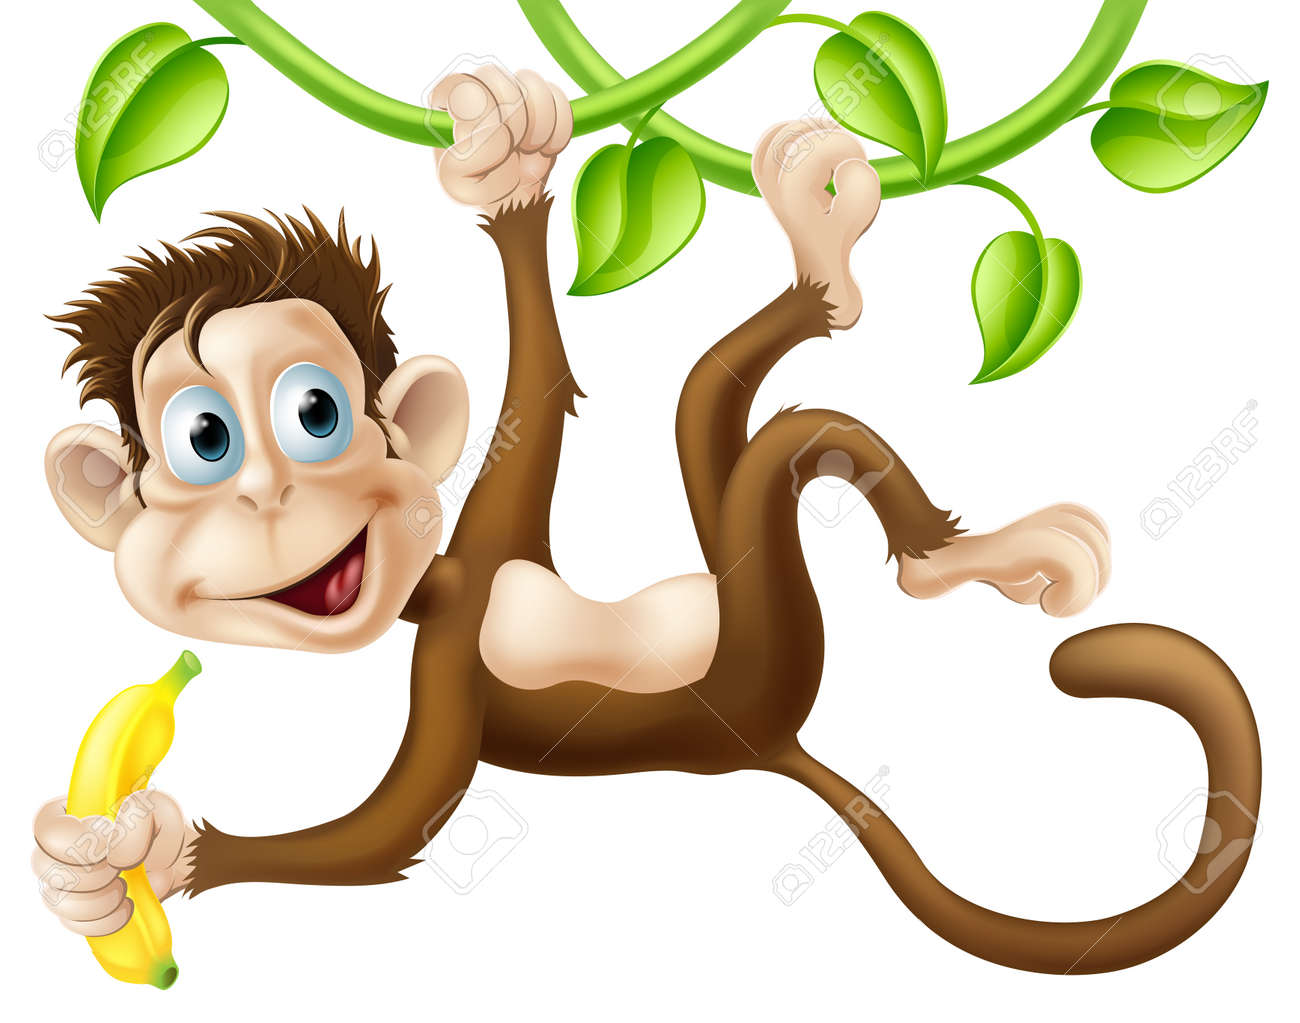 A Cute Monkey Swinging From Vines With A Banana In His Hand